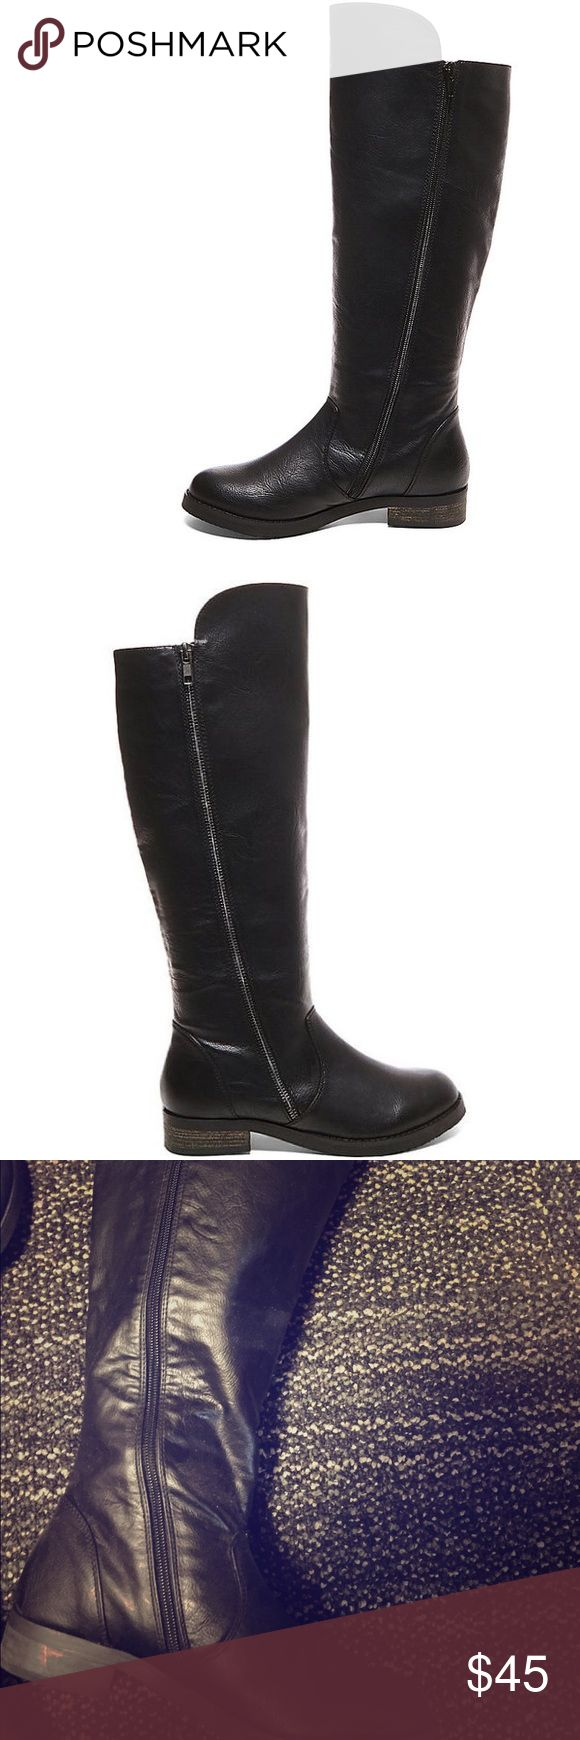 Steve Madden  Black Tall Boots Tall Black Boots with heel. Nice accent zipper along the side. Perfect with jeans or dress/skirt! Steve Madden Shoes Combat & Moto Boots